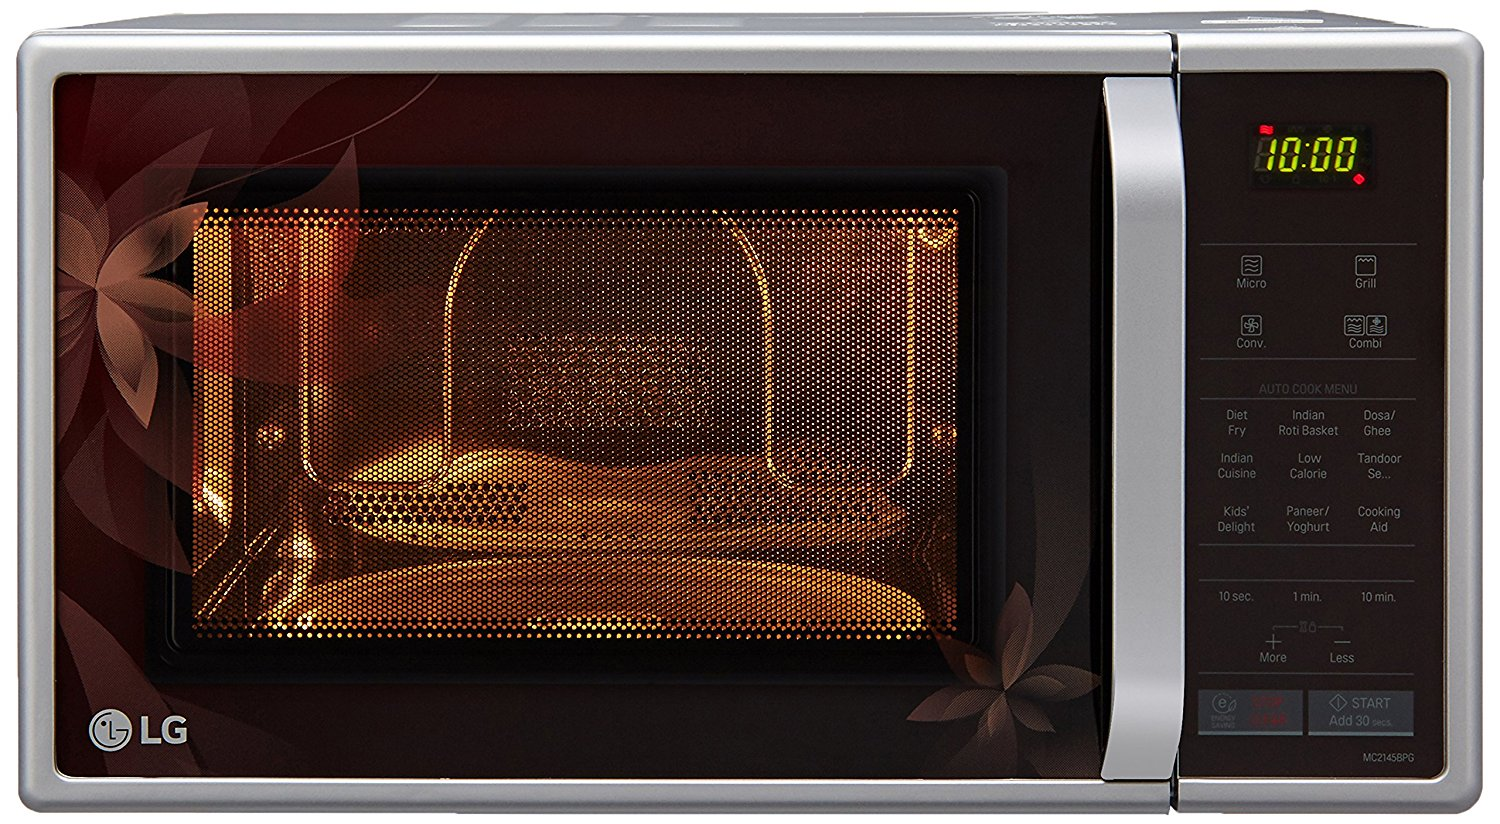 Silver finish LG convection microwave oven 21L